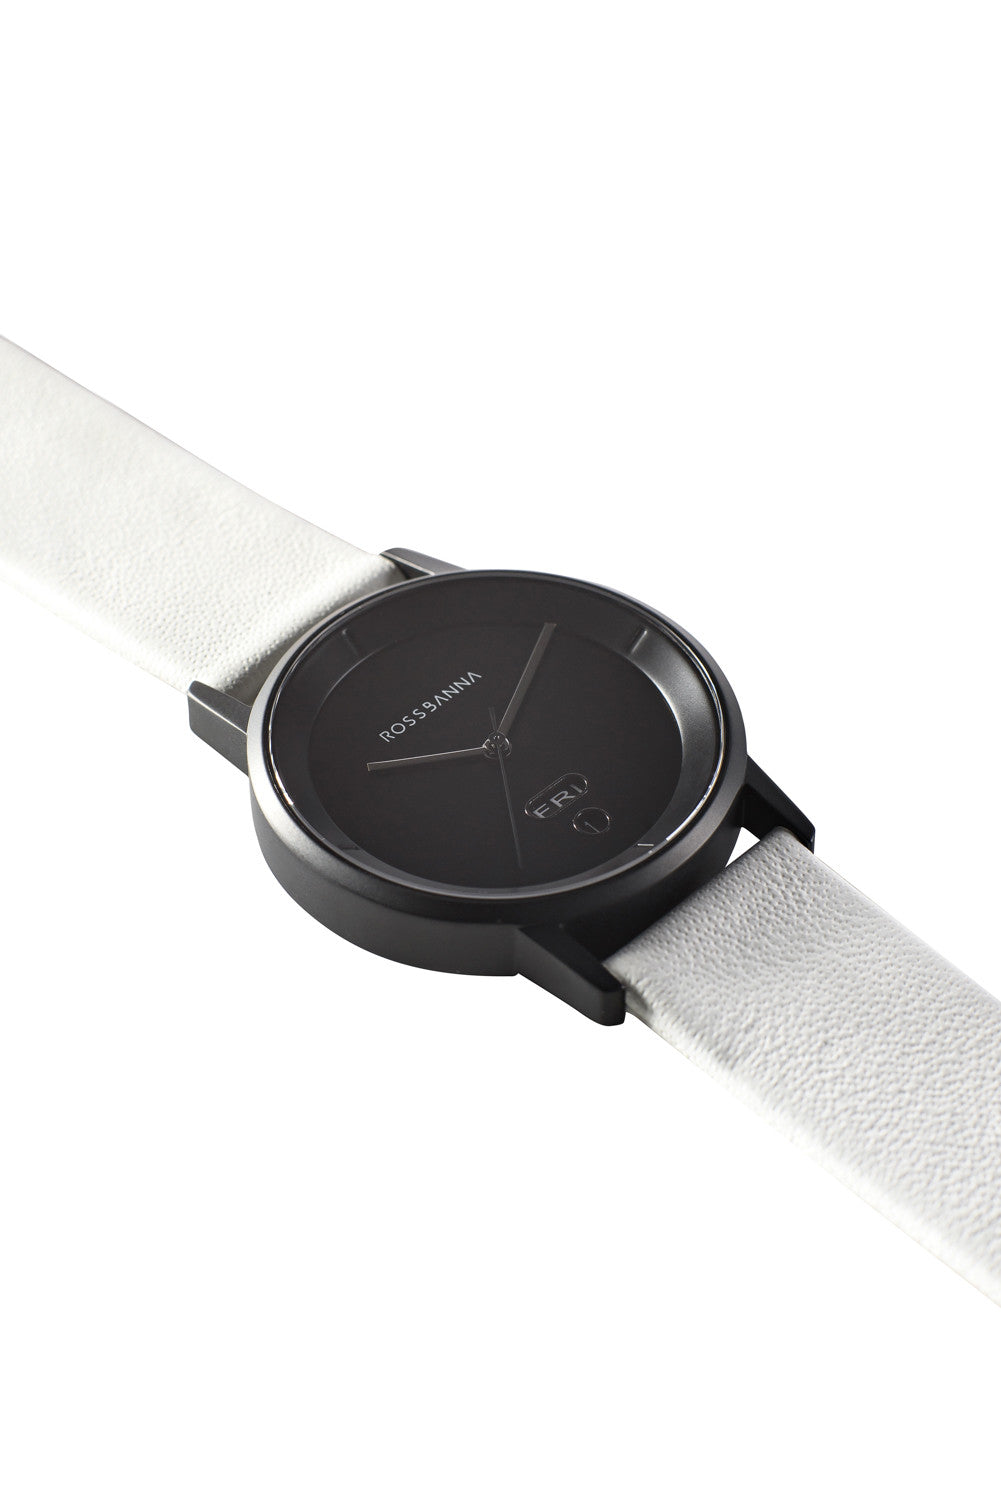 Matte black Rossbanna Cornice watch with white strap, minimal, elegant, timeless, unique timepiece 02